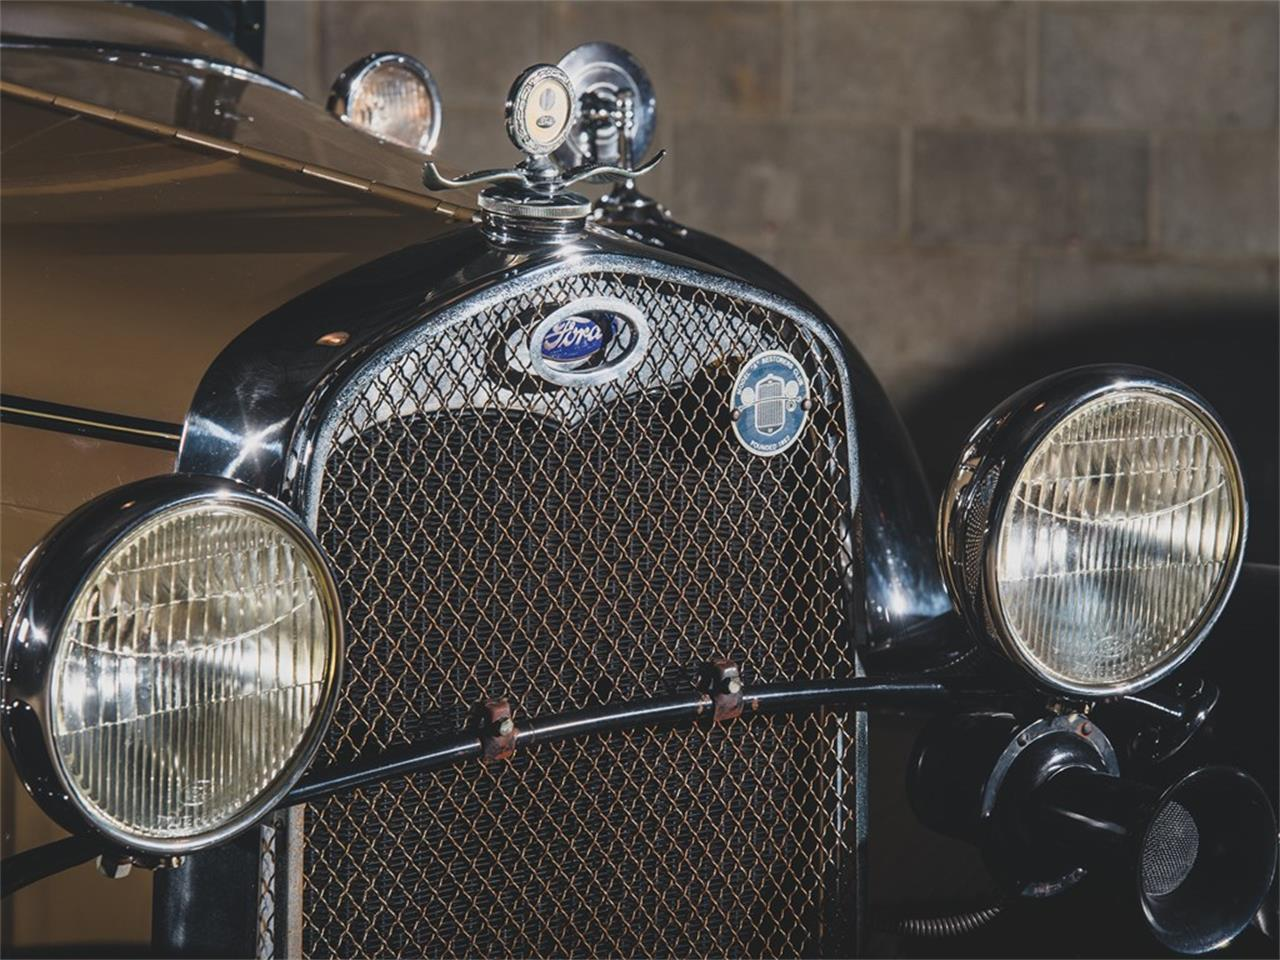 Large Picture of 1930 Model A DeLuxe Roadster located in St Louis Missouri Auction Vehicle Offered by RM Sotheby's - PMMS